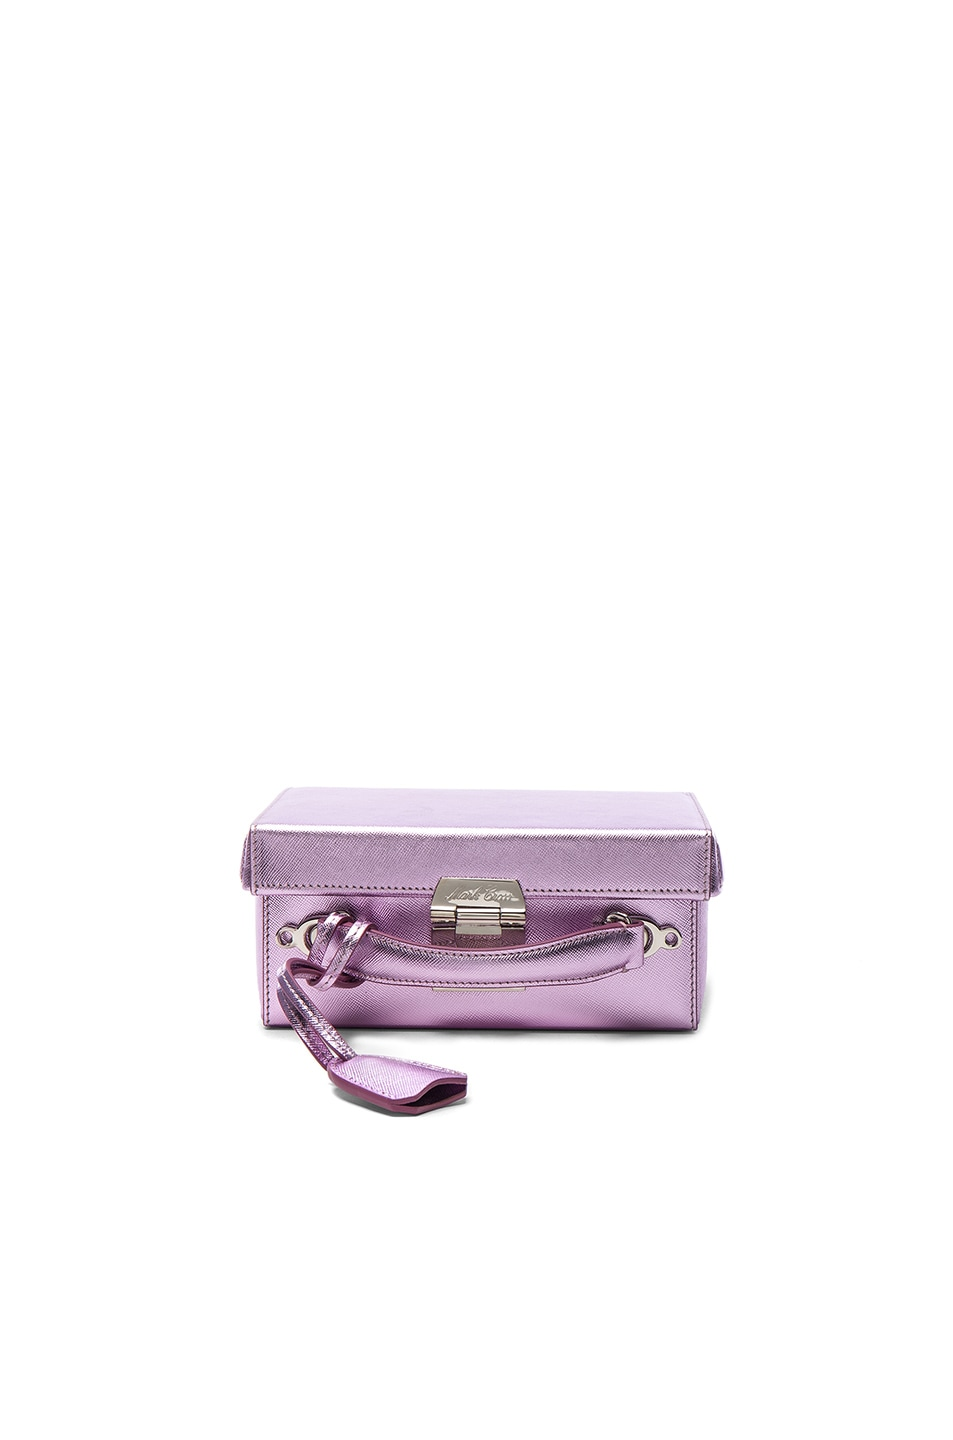 Image 1 of Mark Cross Grace Small Box Bag in Pink Lilac Metallic Saffiano